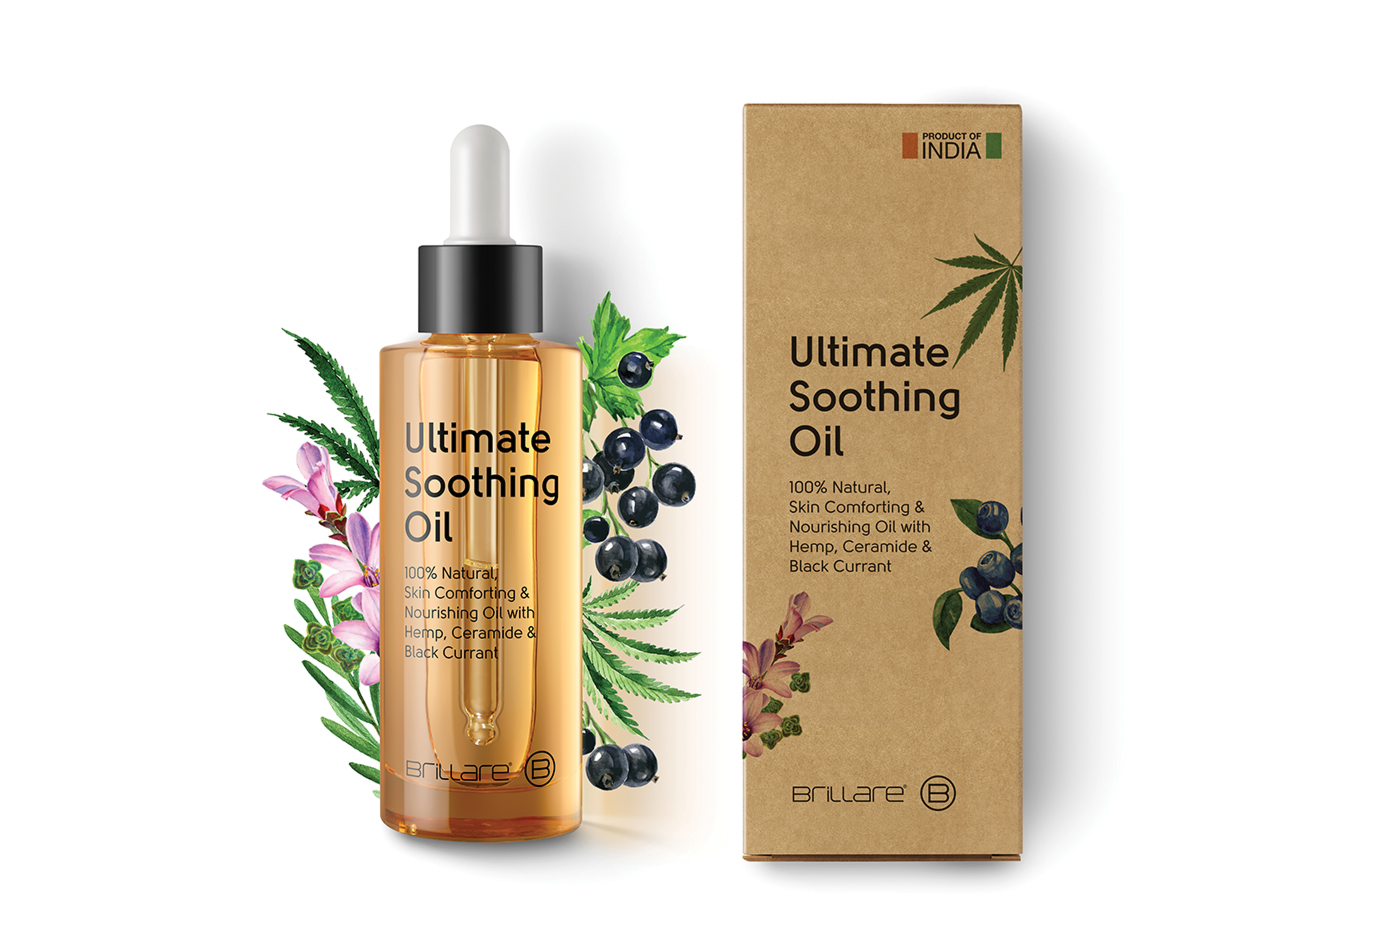 Brillare's soothing oil for irritated skin